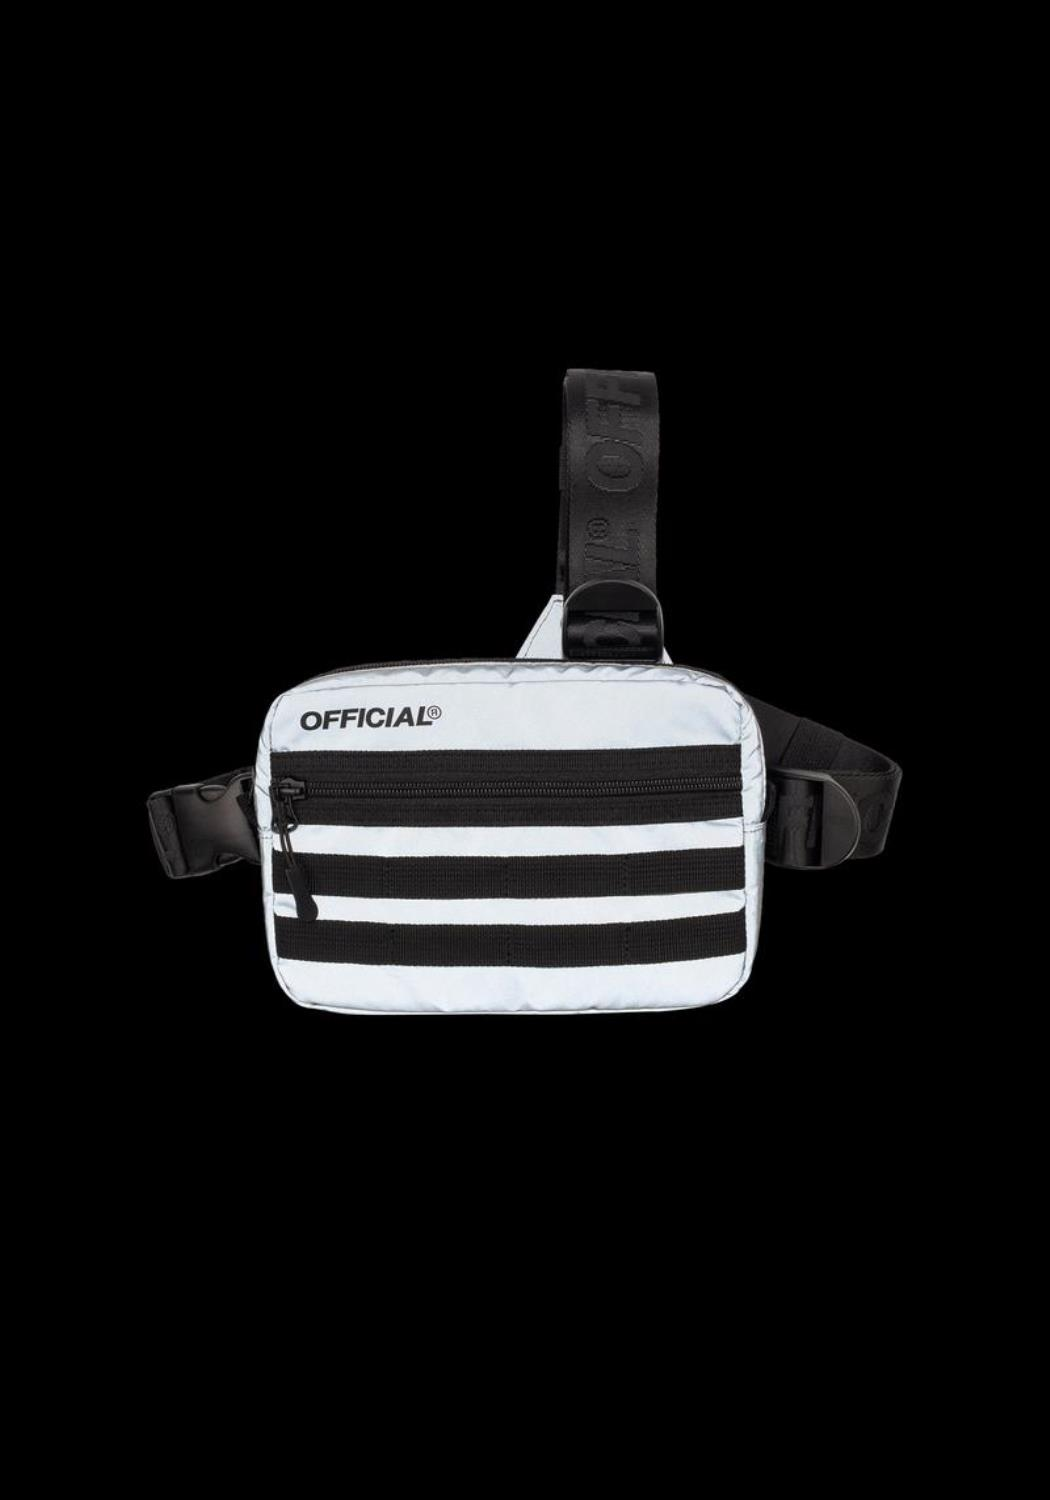 OFFICIAL - RFLCTIV Silver Reflective Tri-Strap Chest Utility Bag